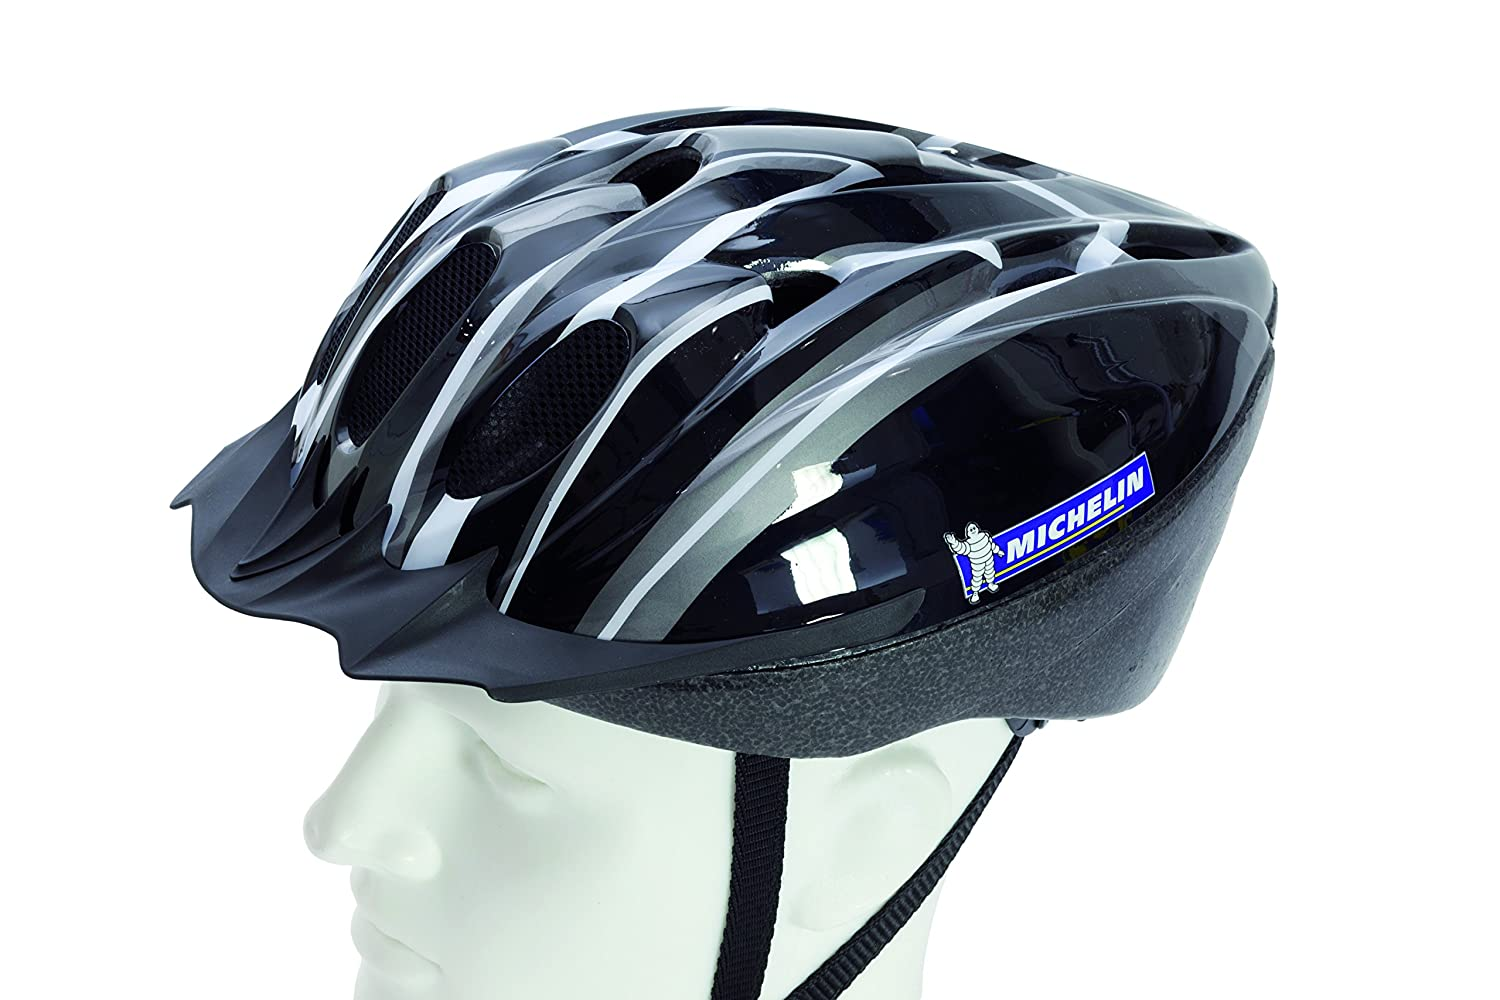 Michelin Ms Action Sport Casco de Bicicleta, Color Negro y Blanco: Amazon.es: Deportes y aire libre